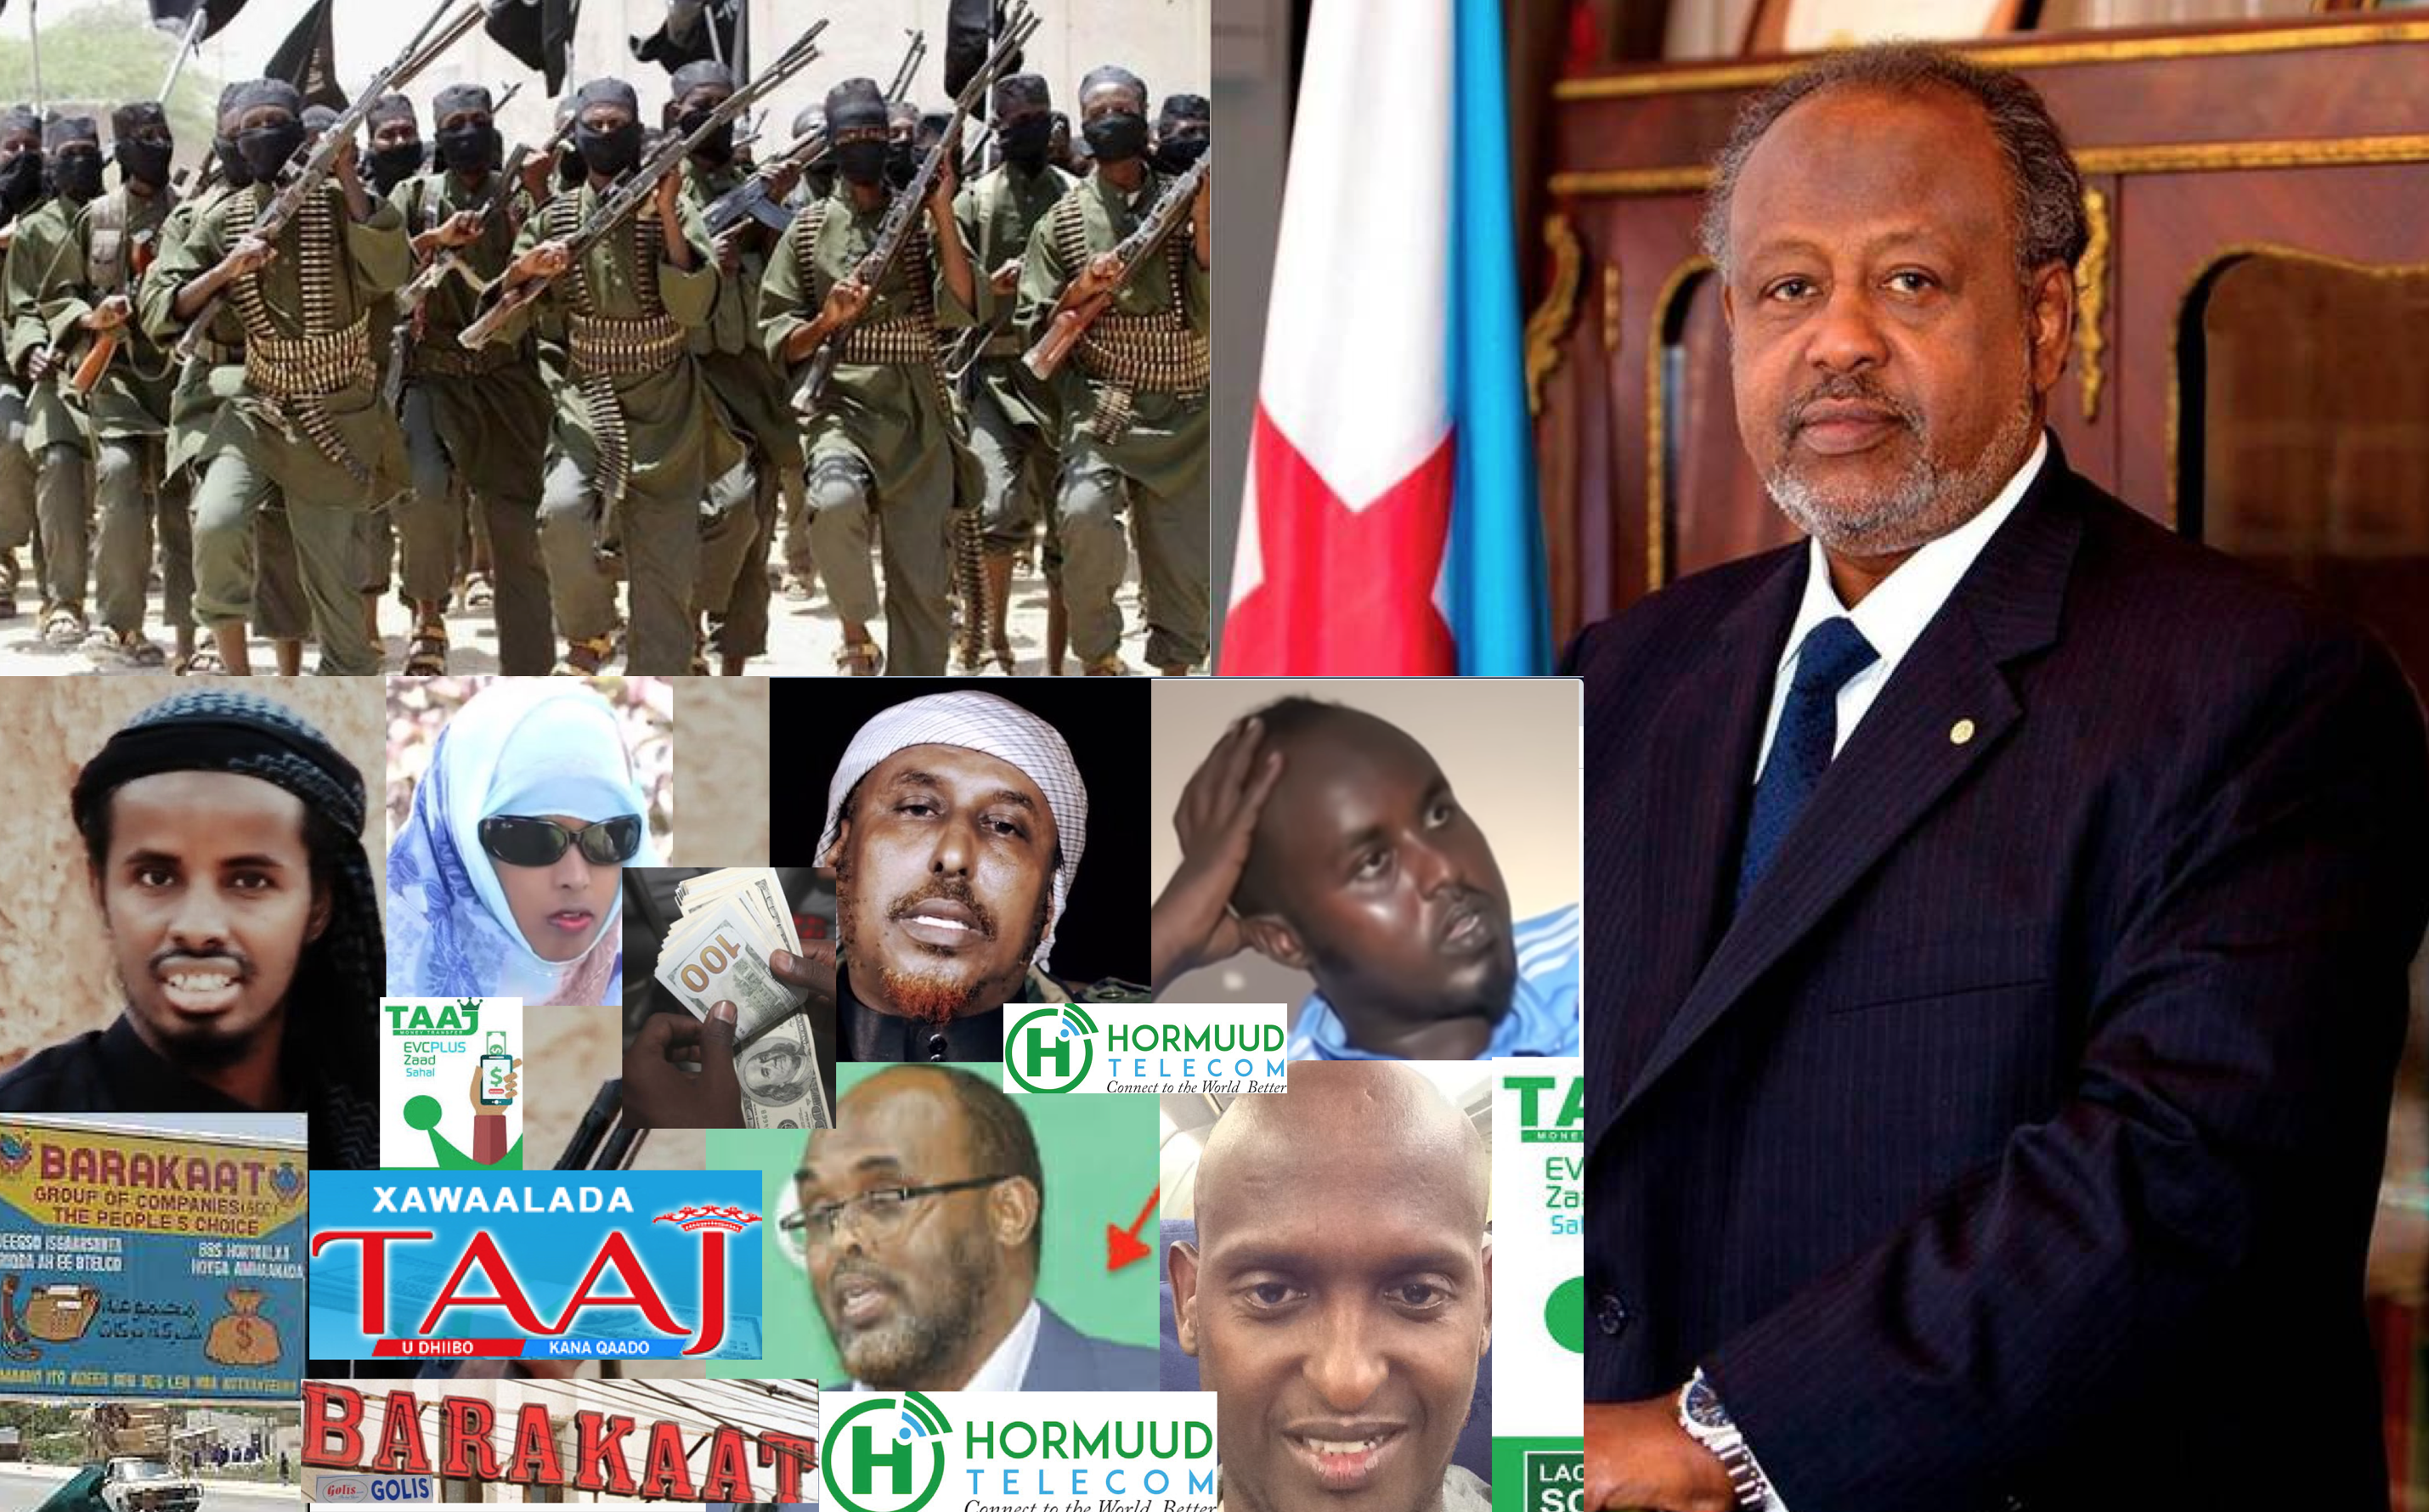 Somalia:The President of Djibouti is the creator of Al-Shabab terror group.